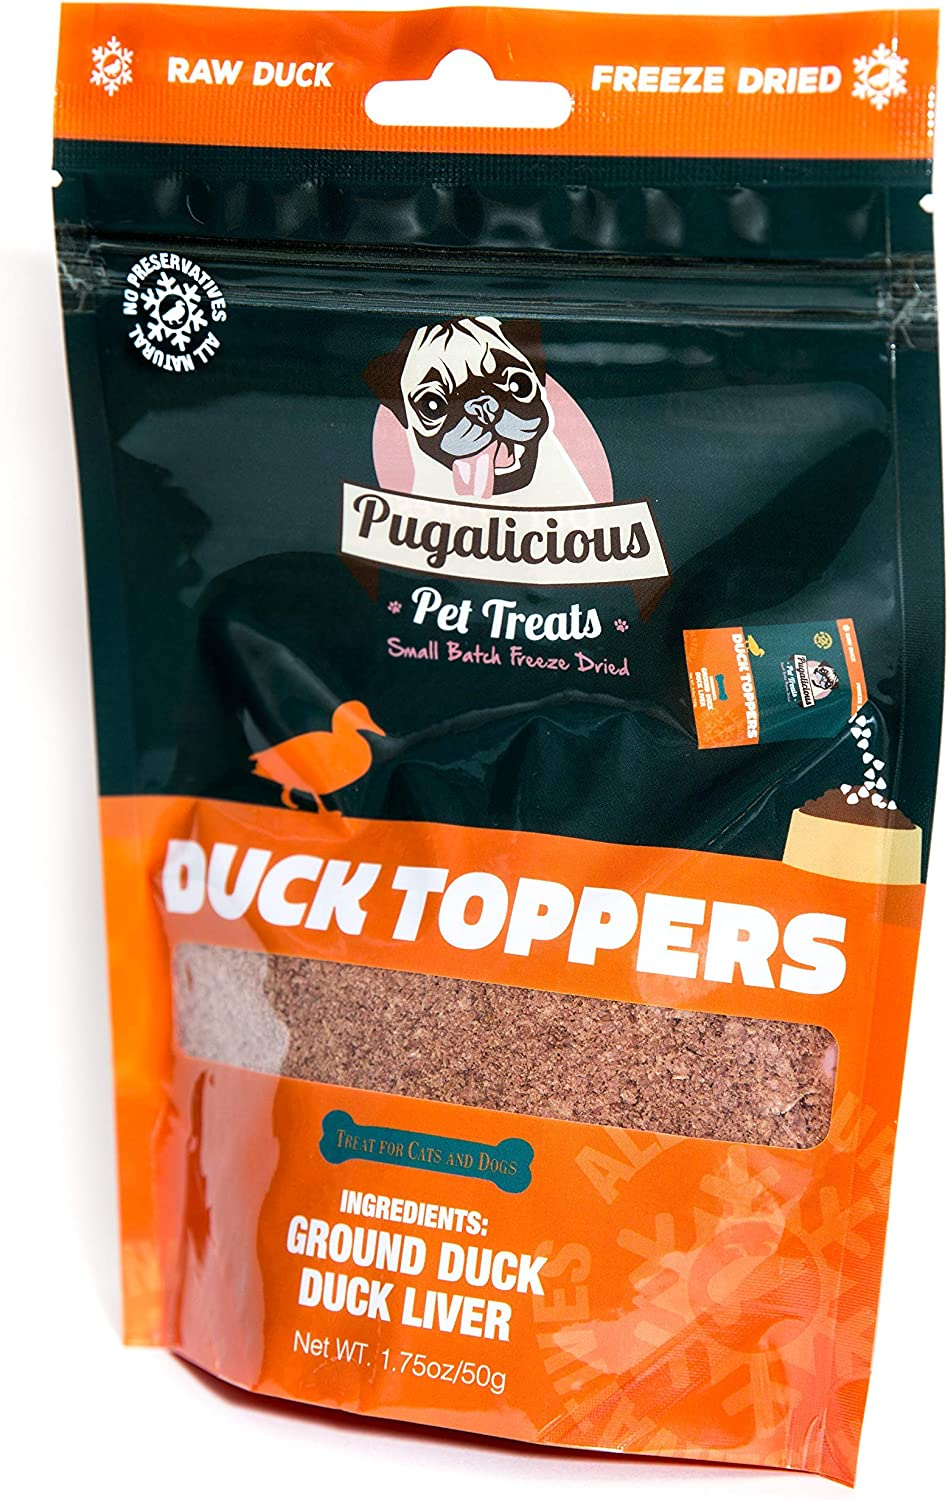 Pugalicious Pet Meal Toppers for Dogs and Cats (1.75oz/50g) (1 Bag), Freeze Dried, 100% Duck Meat and Liver, No Added Preservatives, All Natural, Dog and Cat Food Toppers